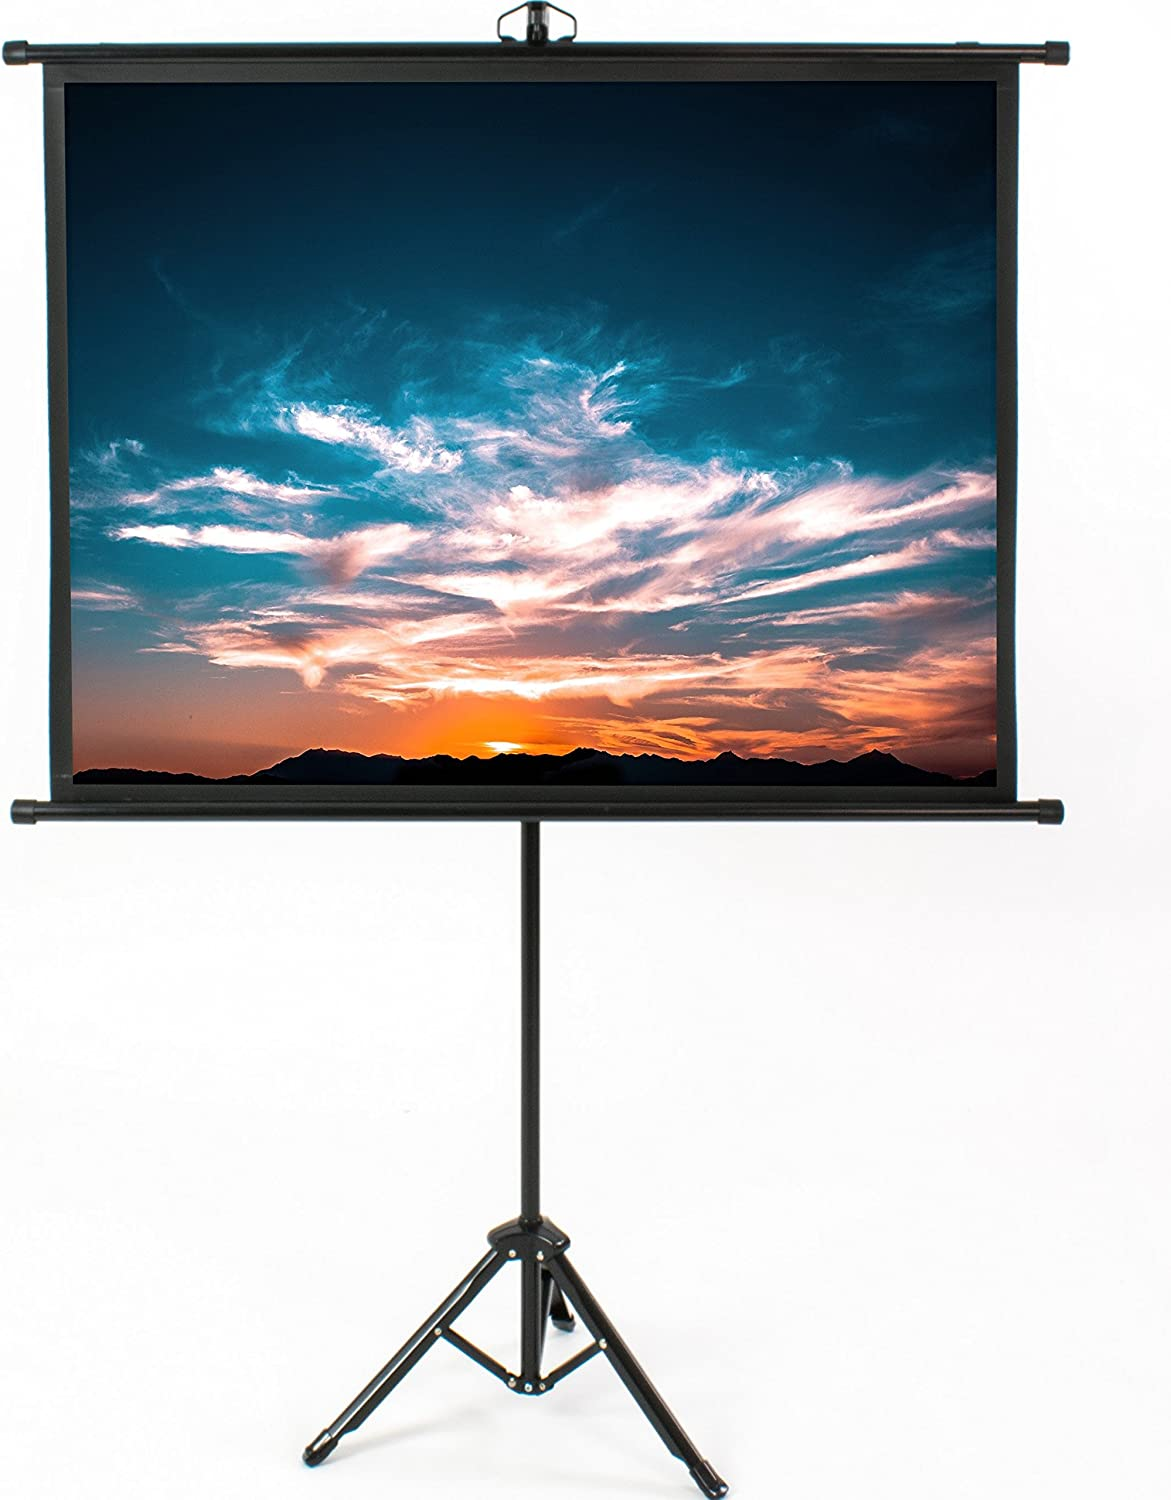 Vivo 50 Inch Mini Portable Indoor Outdoor Projector Screen 50 Inch Diagonal Projection Hd 4 3 Projection Pull Up Foldable Stand Tripod Ps T 050b Electronics